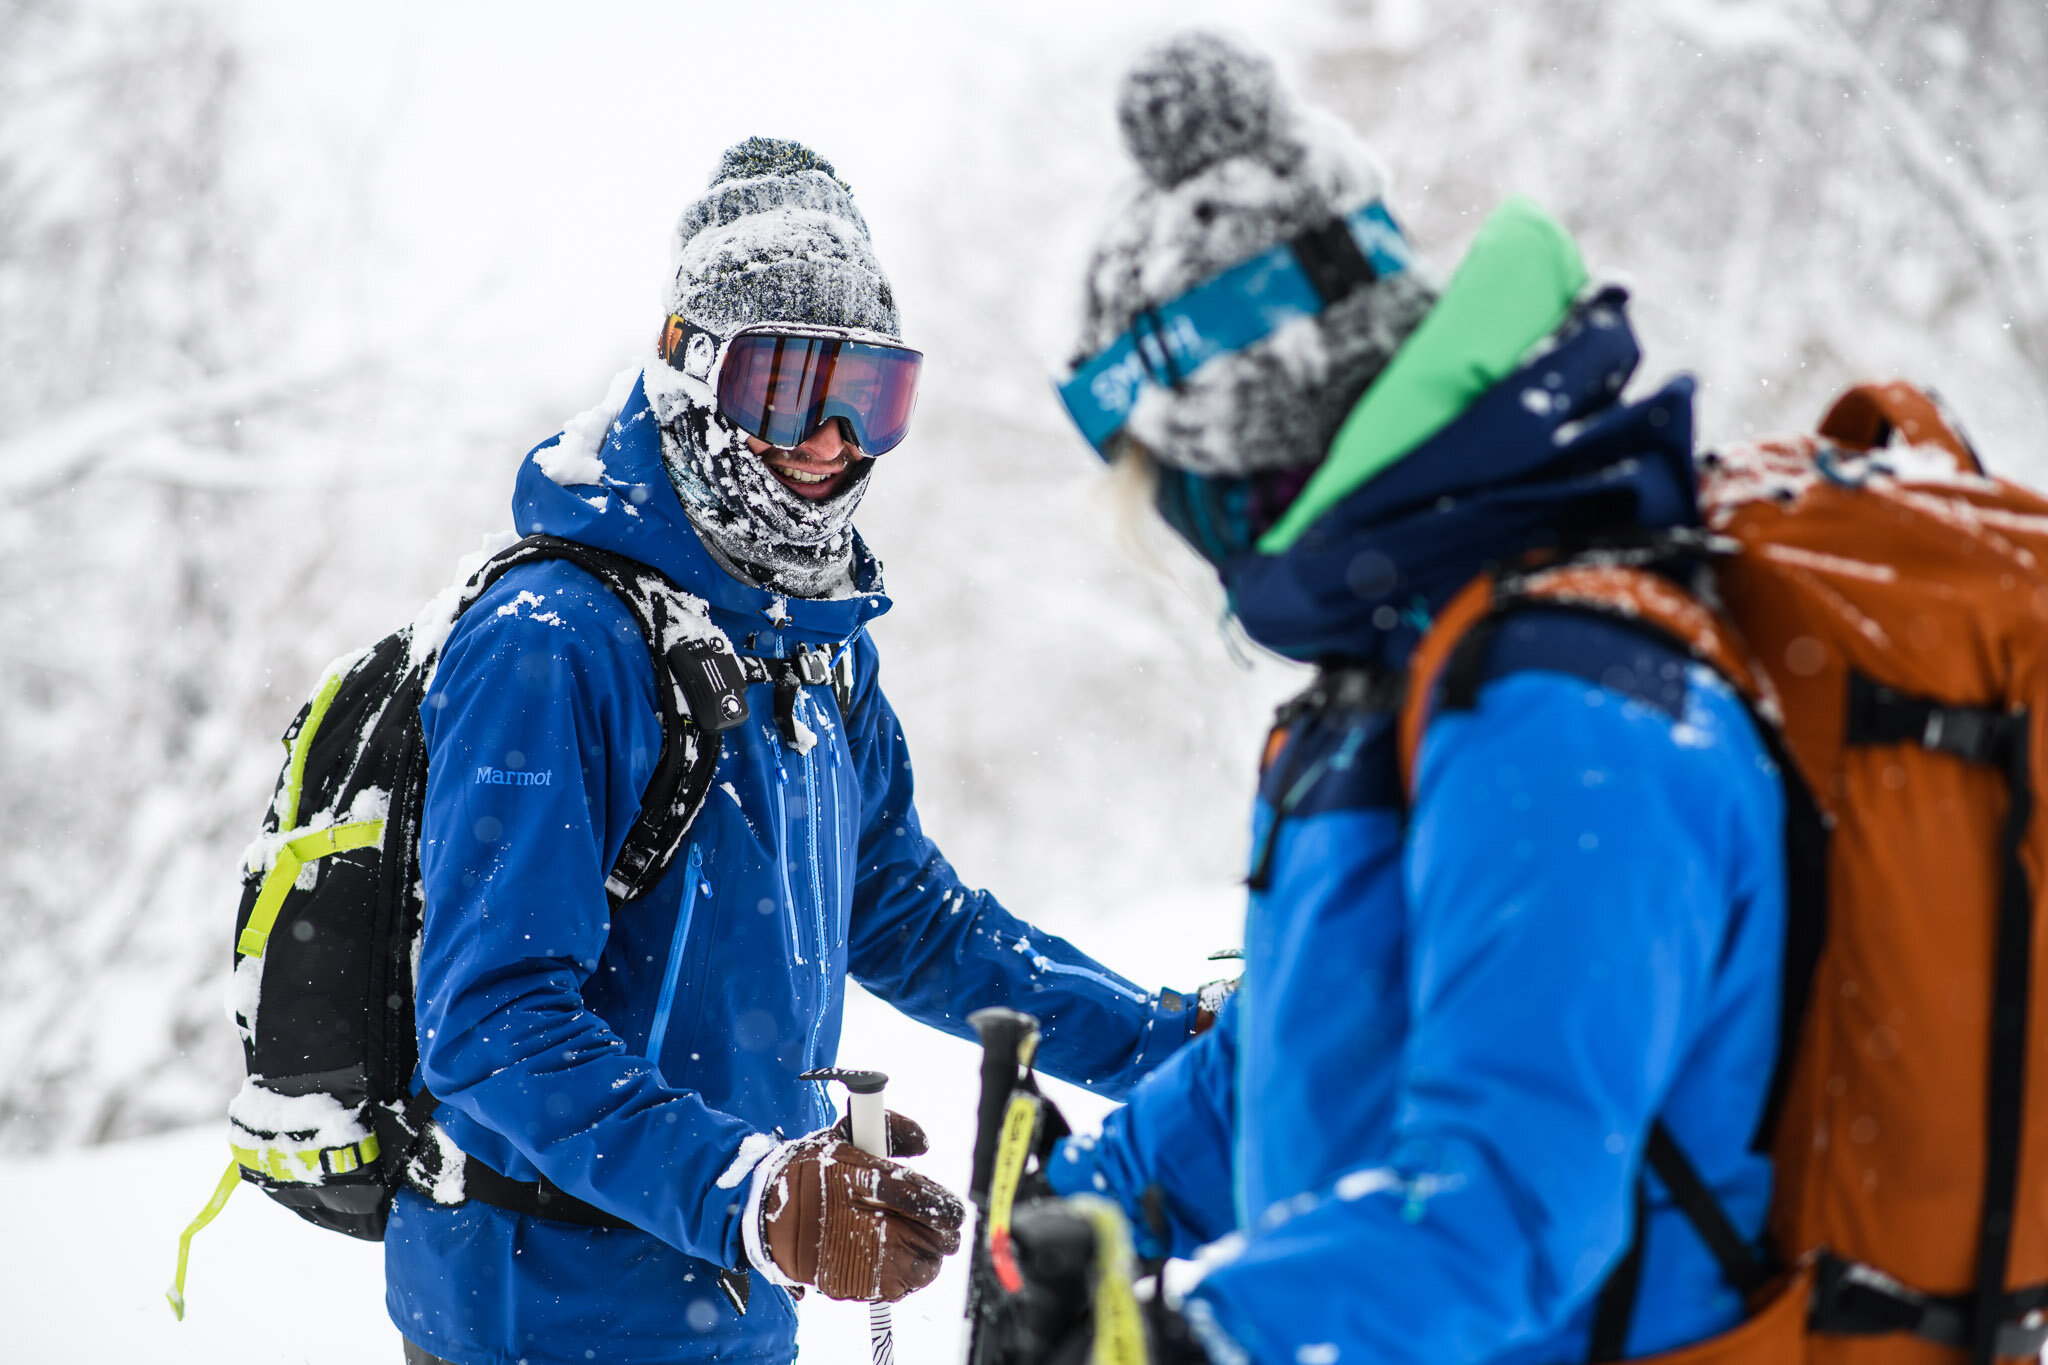 A Group - Some of our best memories in life come from group experiences. I'm thinking of: weddings, weekends with friends, spontaneous group shindigs, family vacations, bachelor or bachelorette parties, and of course ski trips while exploring a new culture.